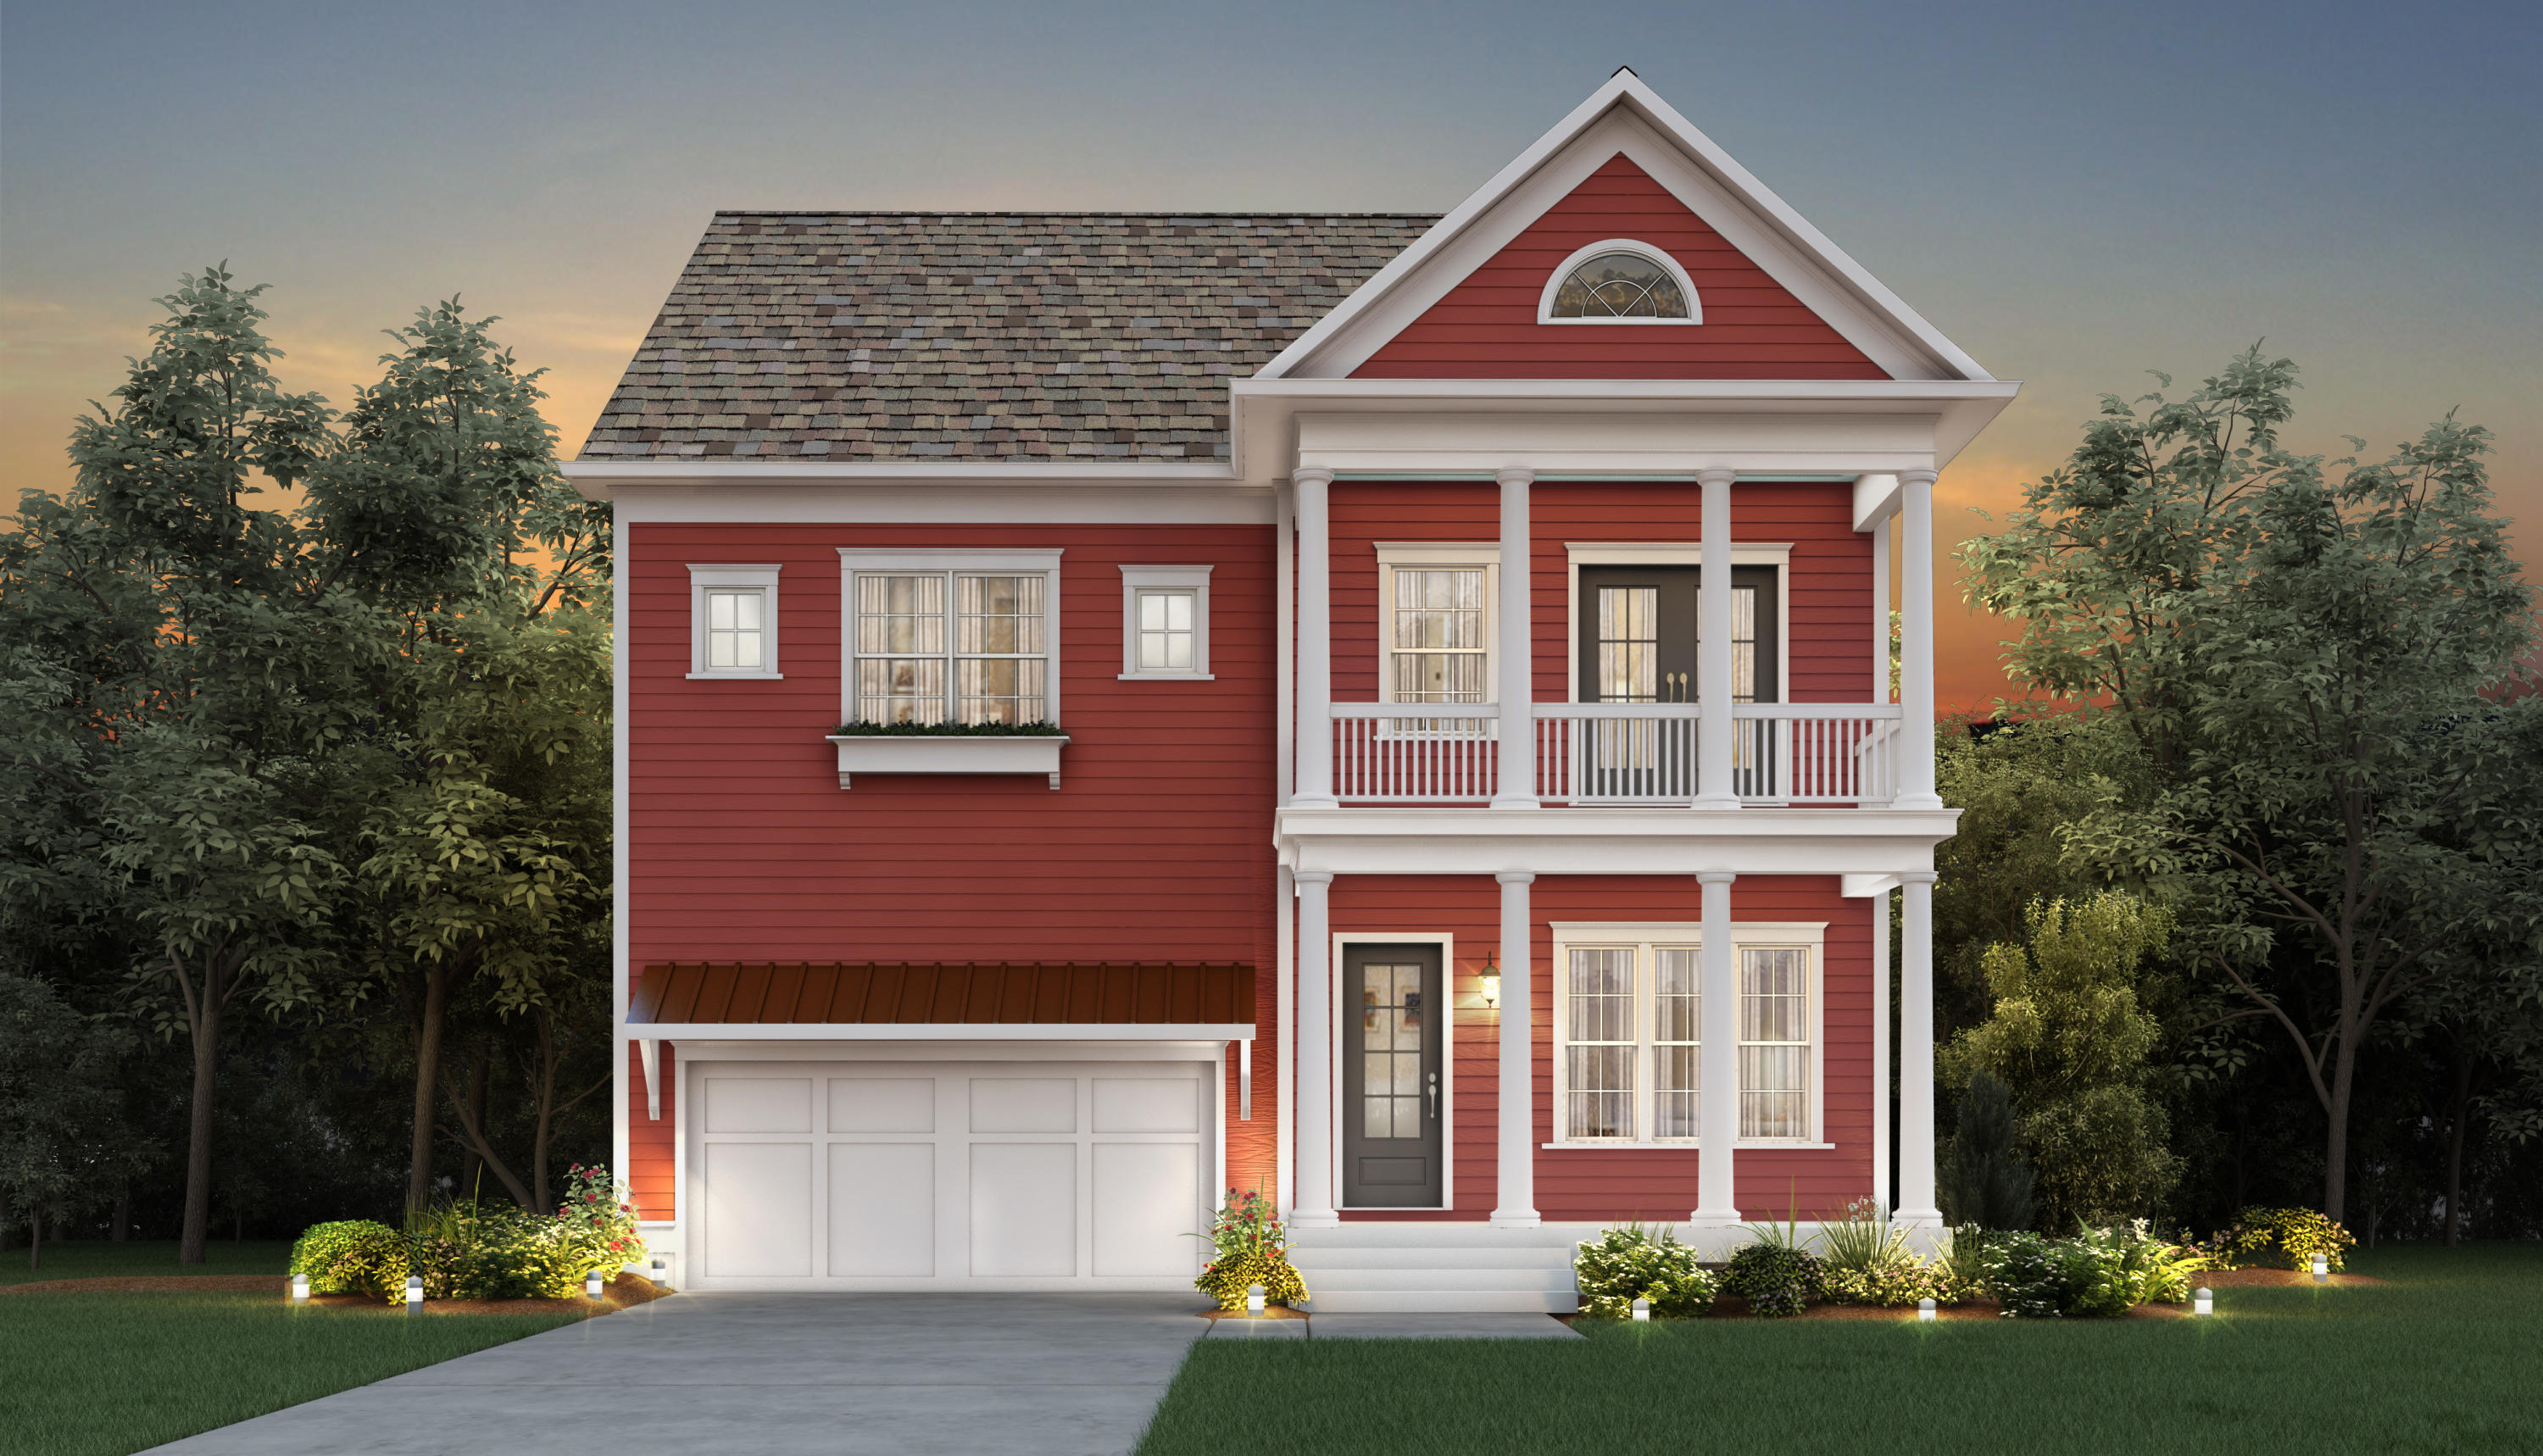 Dunes West Homes For Sale - 2954 Clearwater, Mount Pleasant, SC - 0